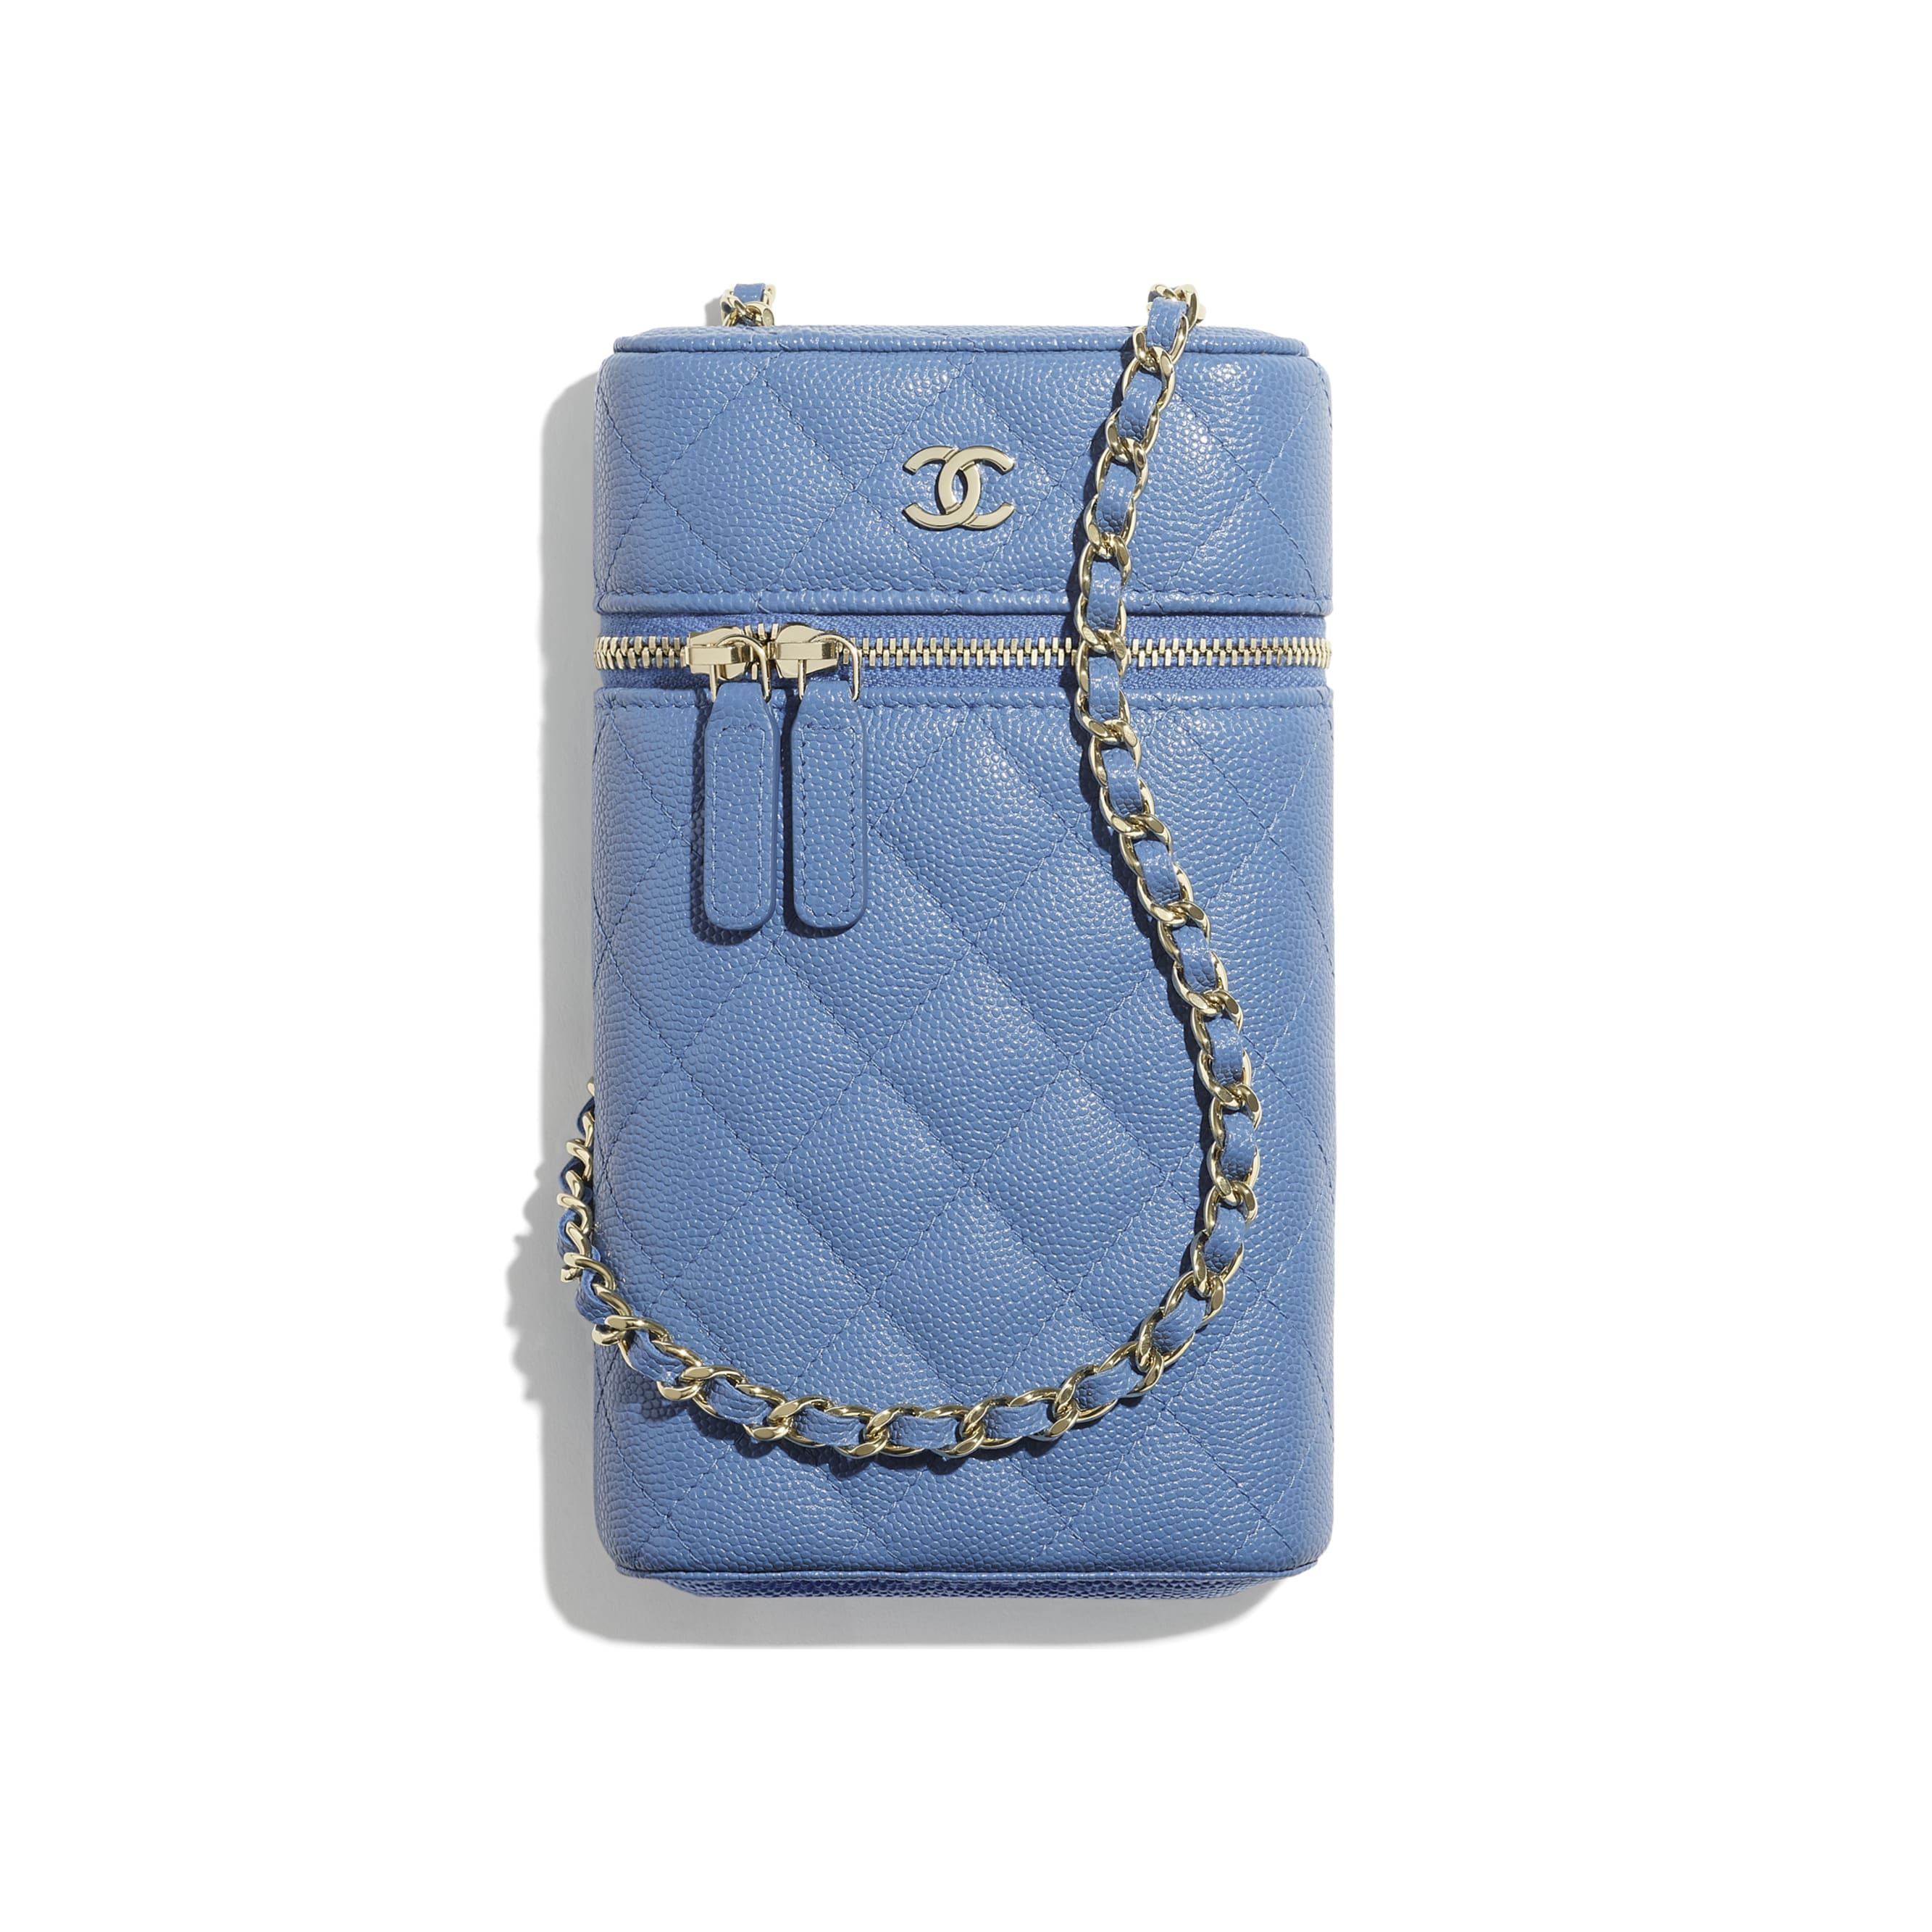 Classic Vanity Phone Holder with Chain - Blue - Grained Calfskin & Gold-Tone Metal - CHANEL - Default view - see standard sized version